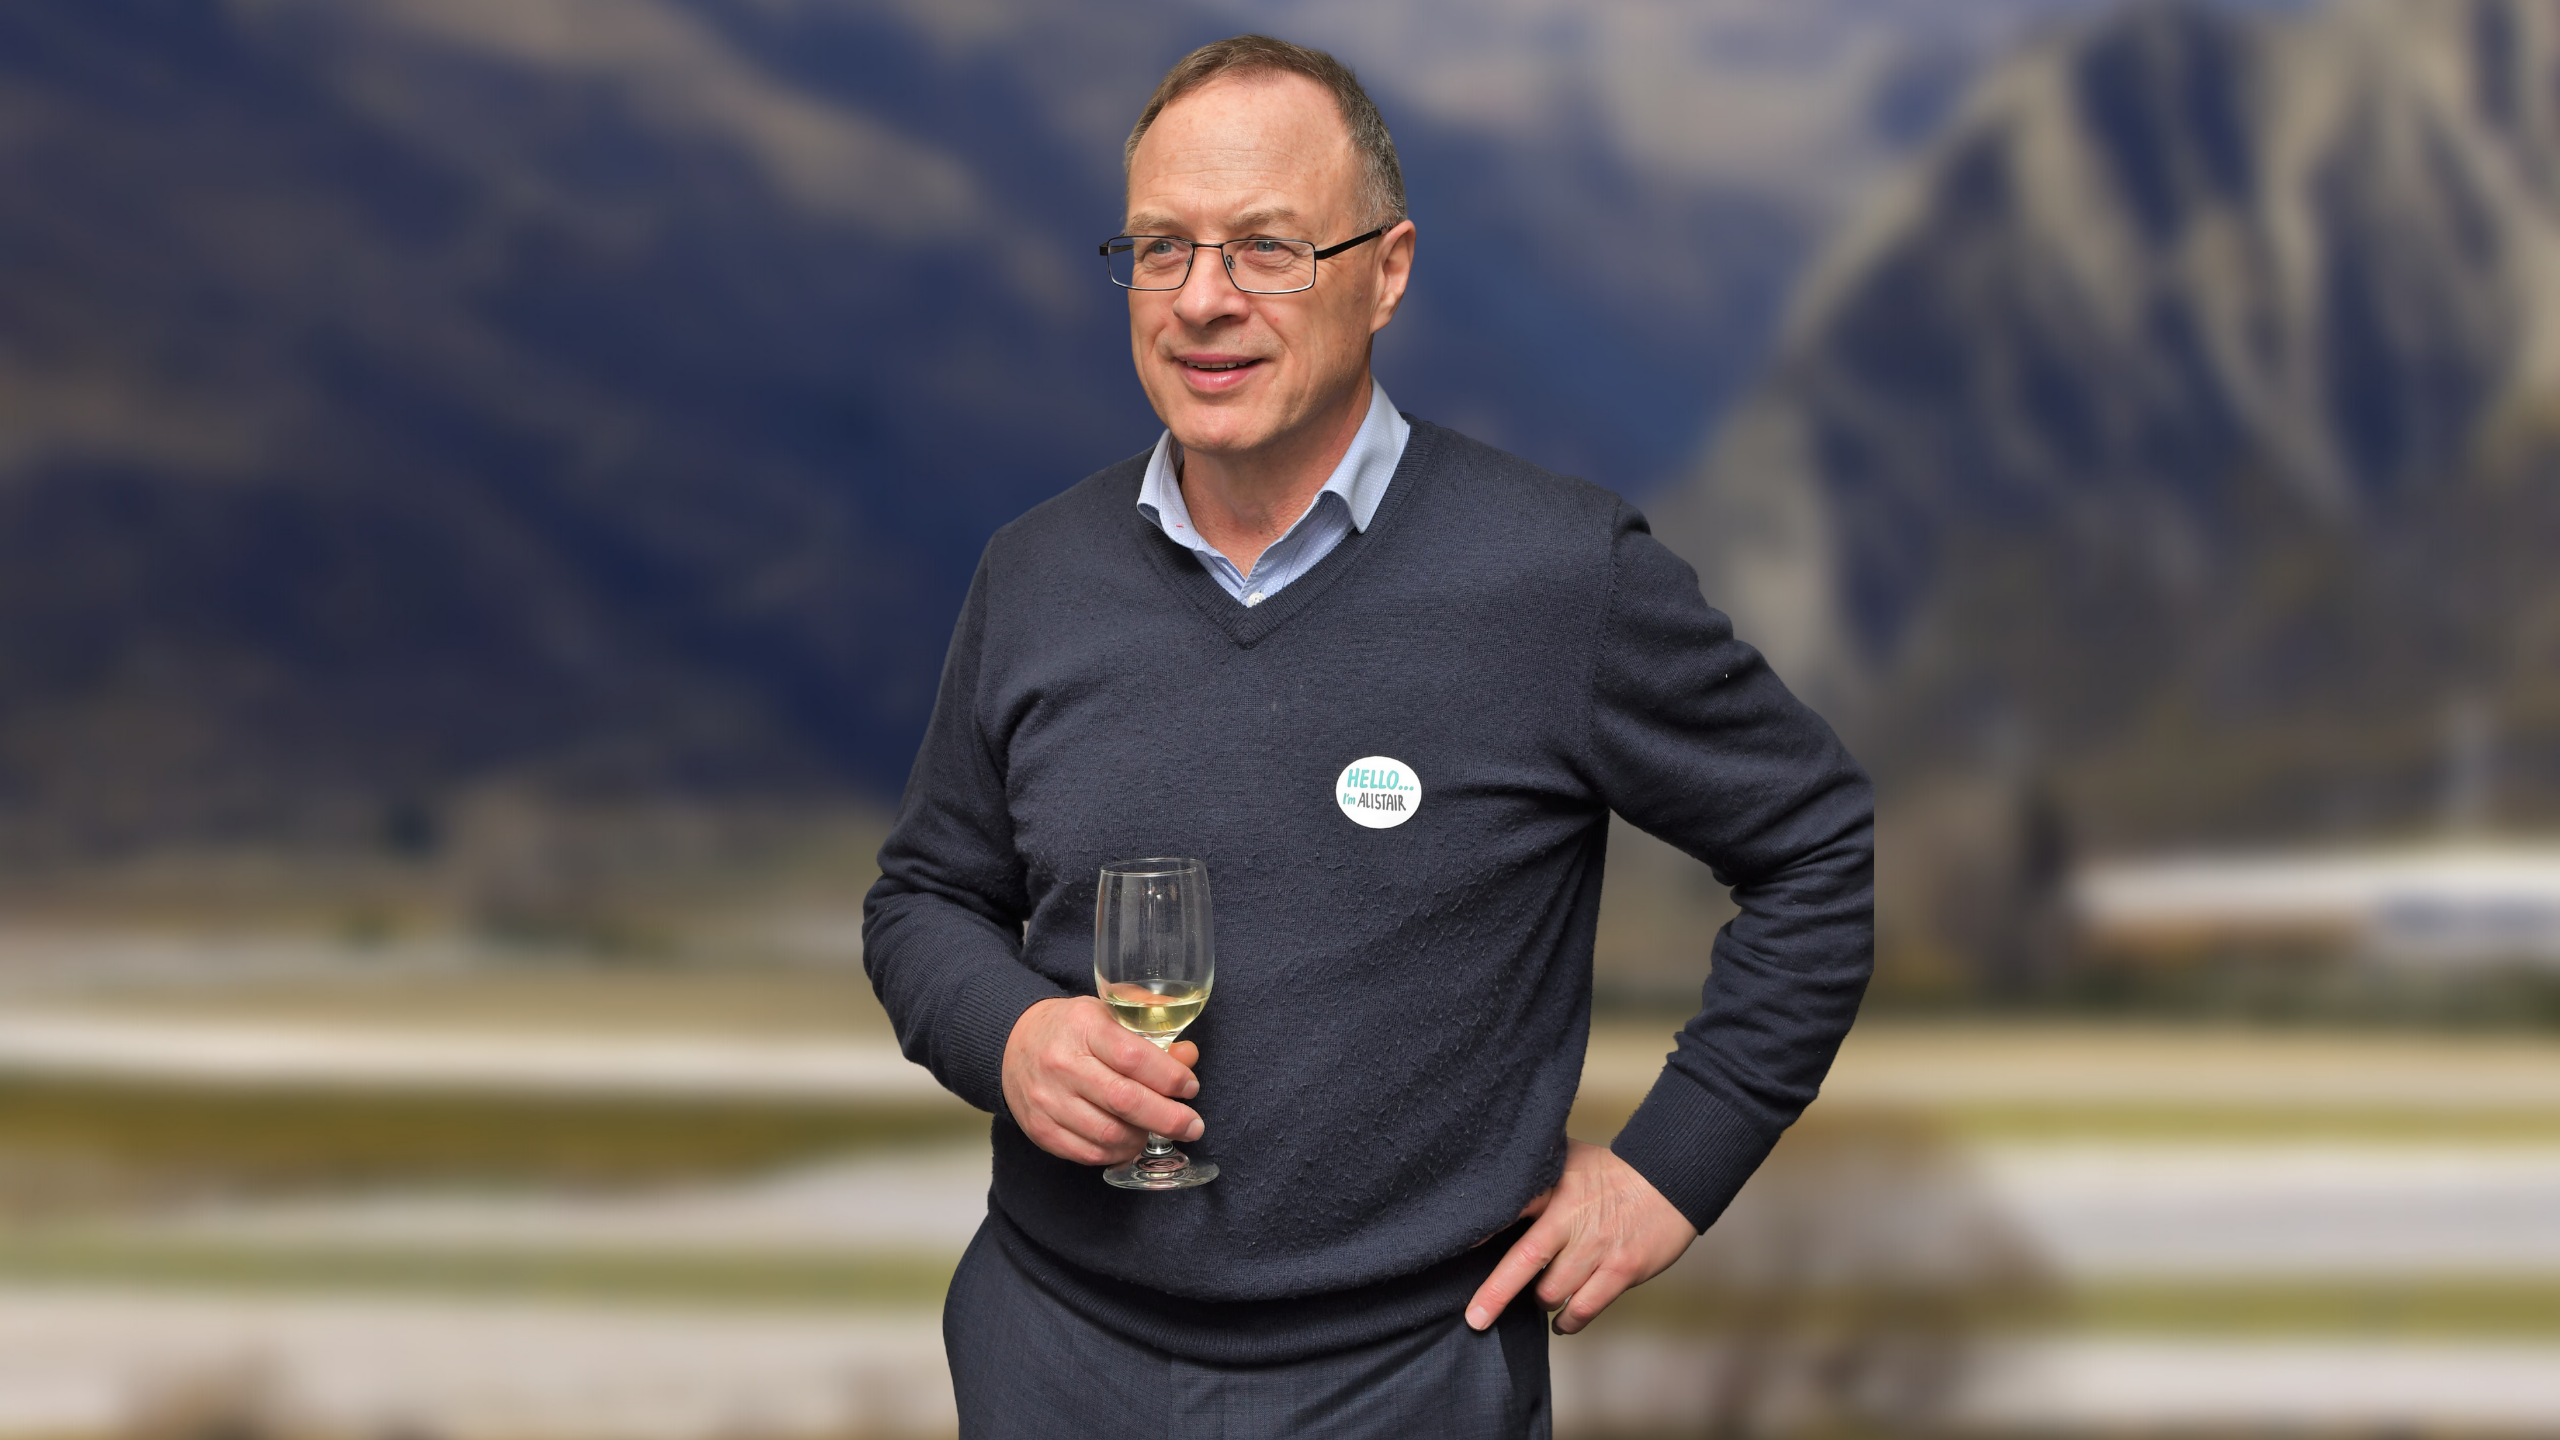 Read more about the article How to choose a great bottle of wine that you'll love from the award-winning central Otago winery Waitiri Creek.